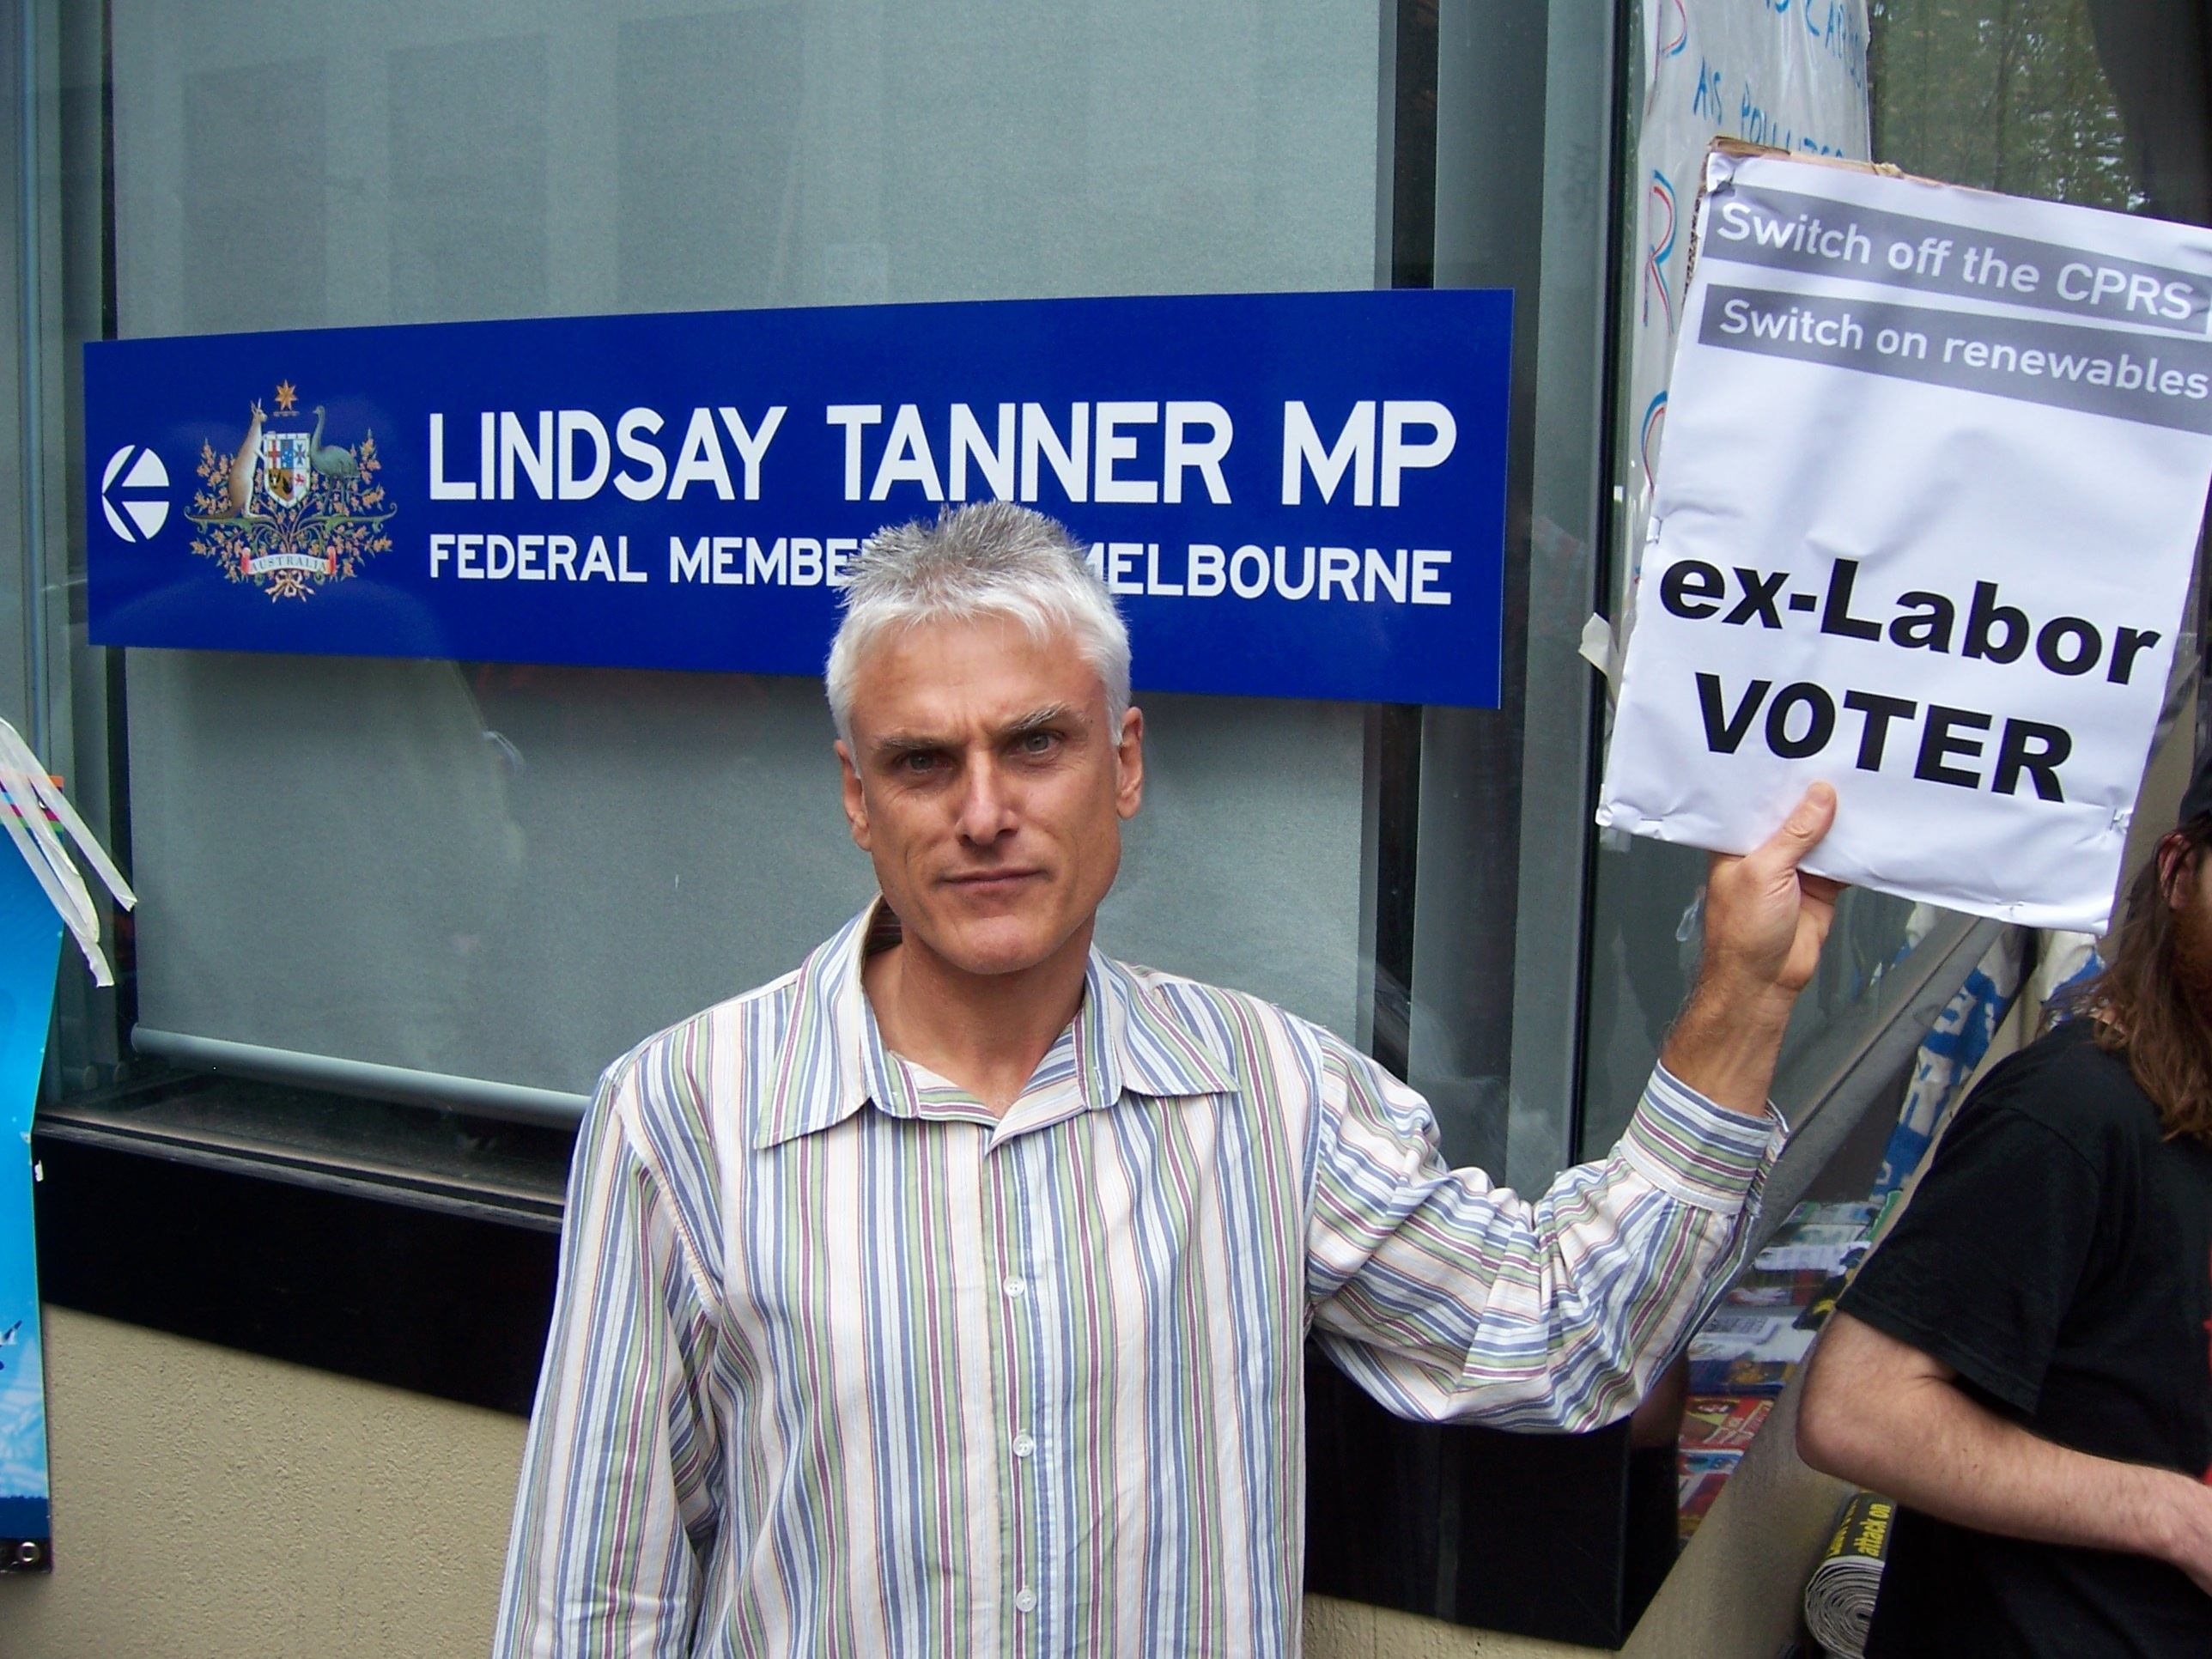 Disgruntled climate activist outside Tanner's office